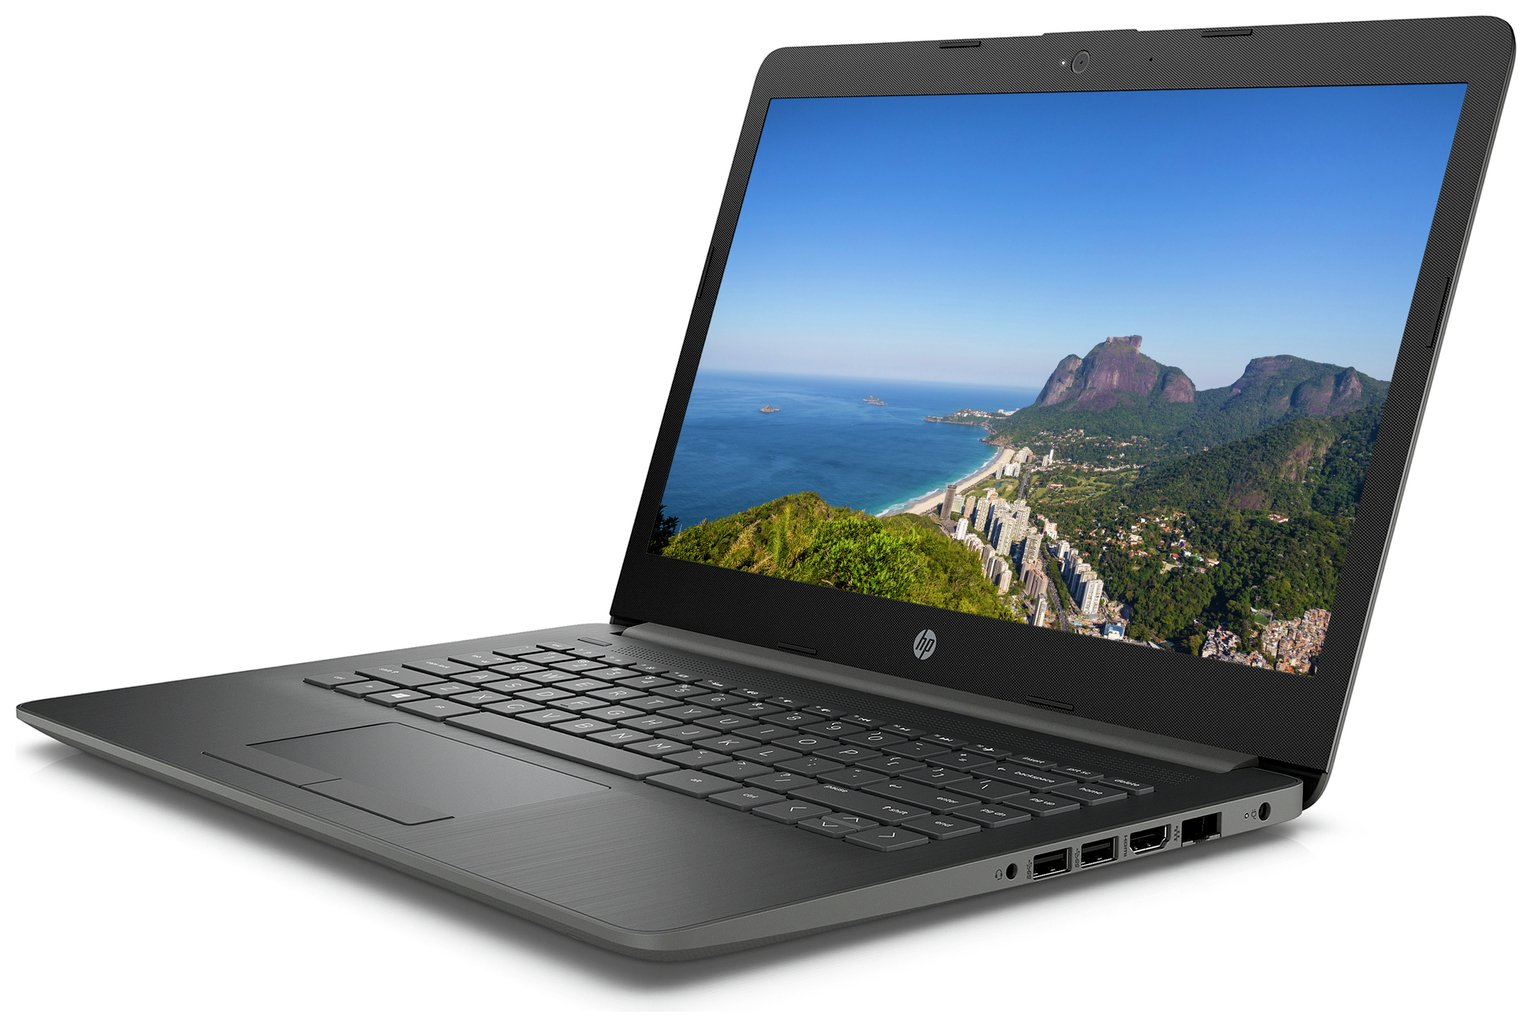 HP 14 Inch Pentium 4GB 128GB Full HD Laptop - Grey